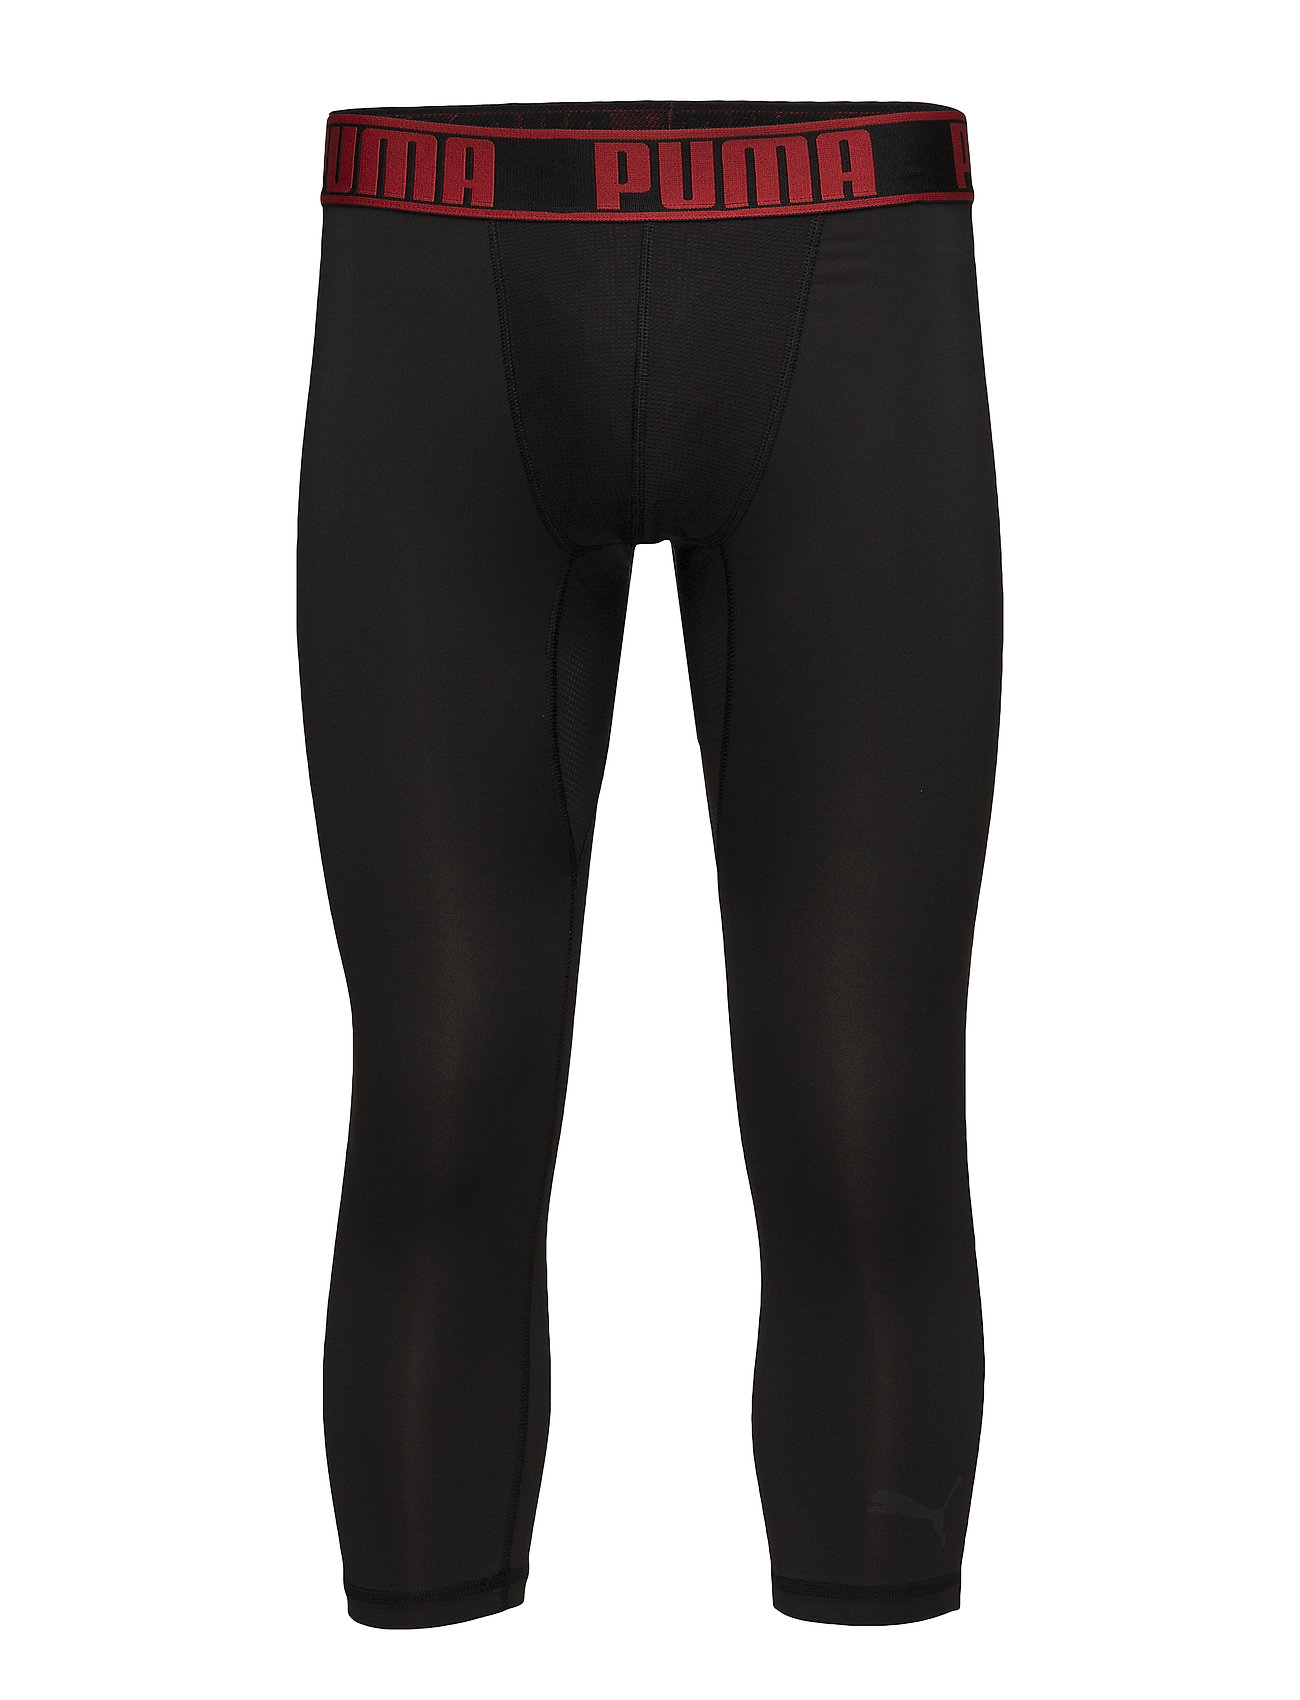 Puma Active 3 4 Tights Boxer 1p Black Red 24 Bottoms